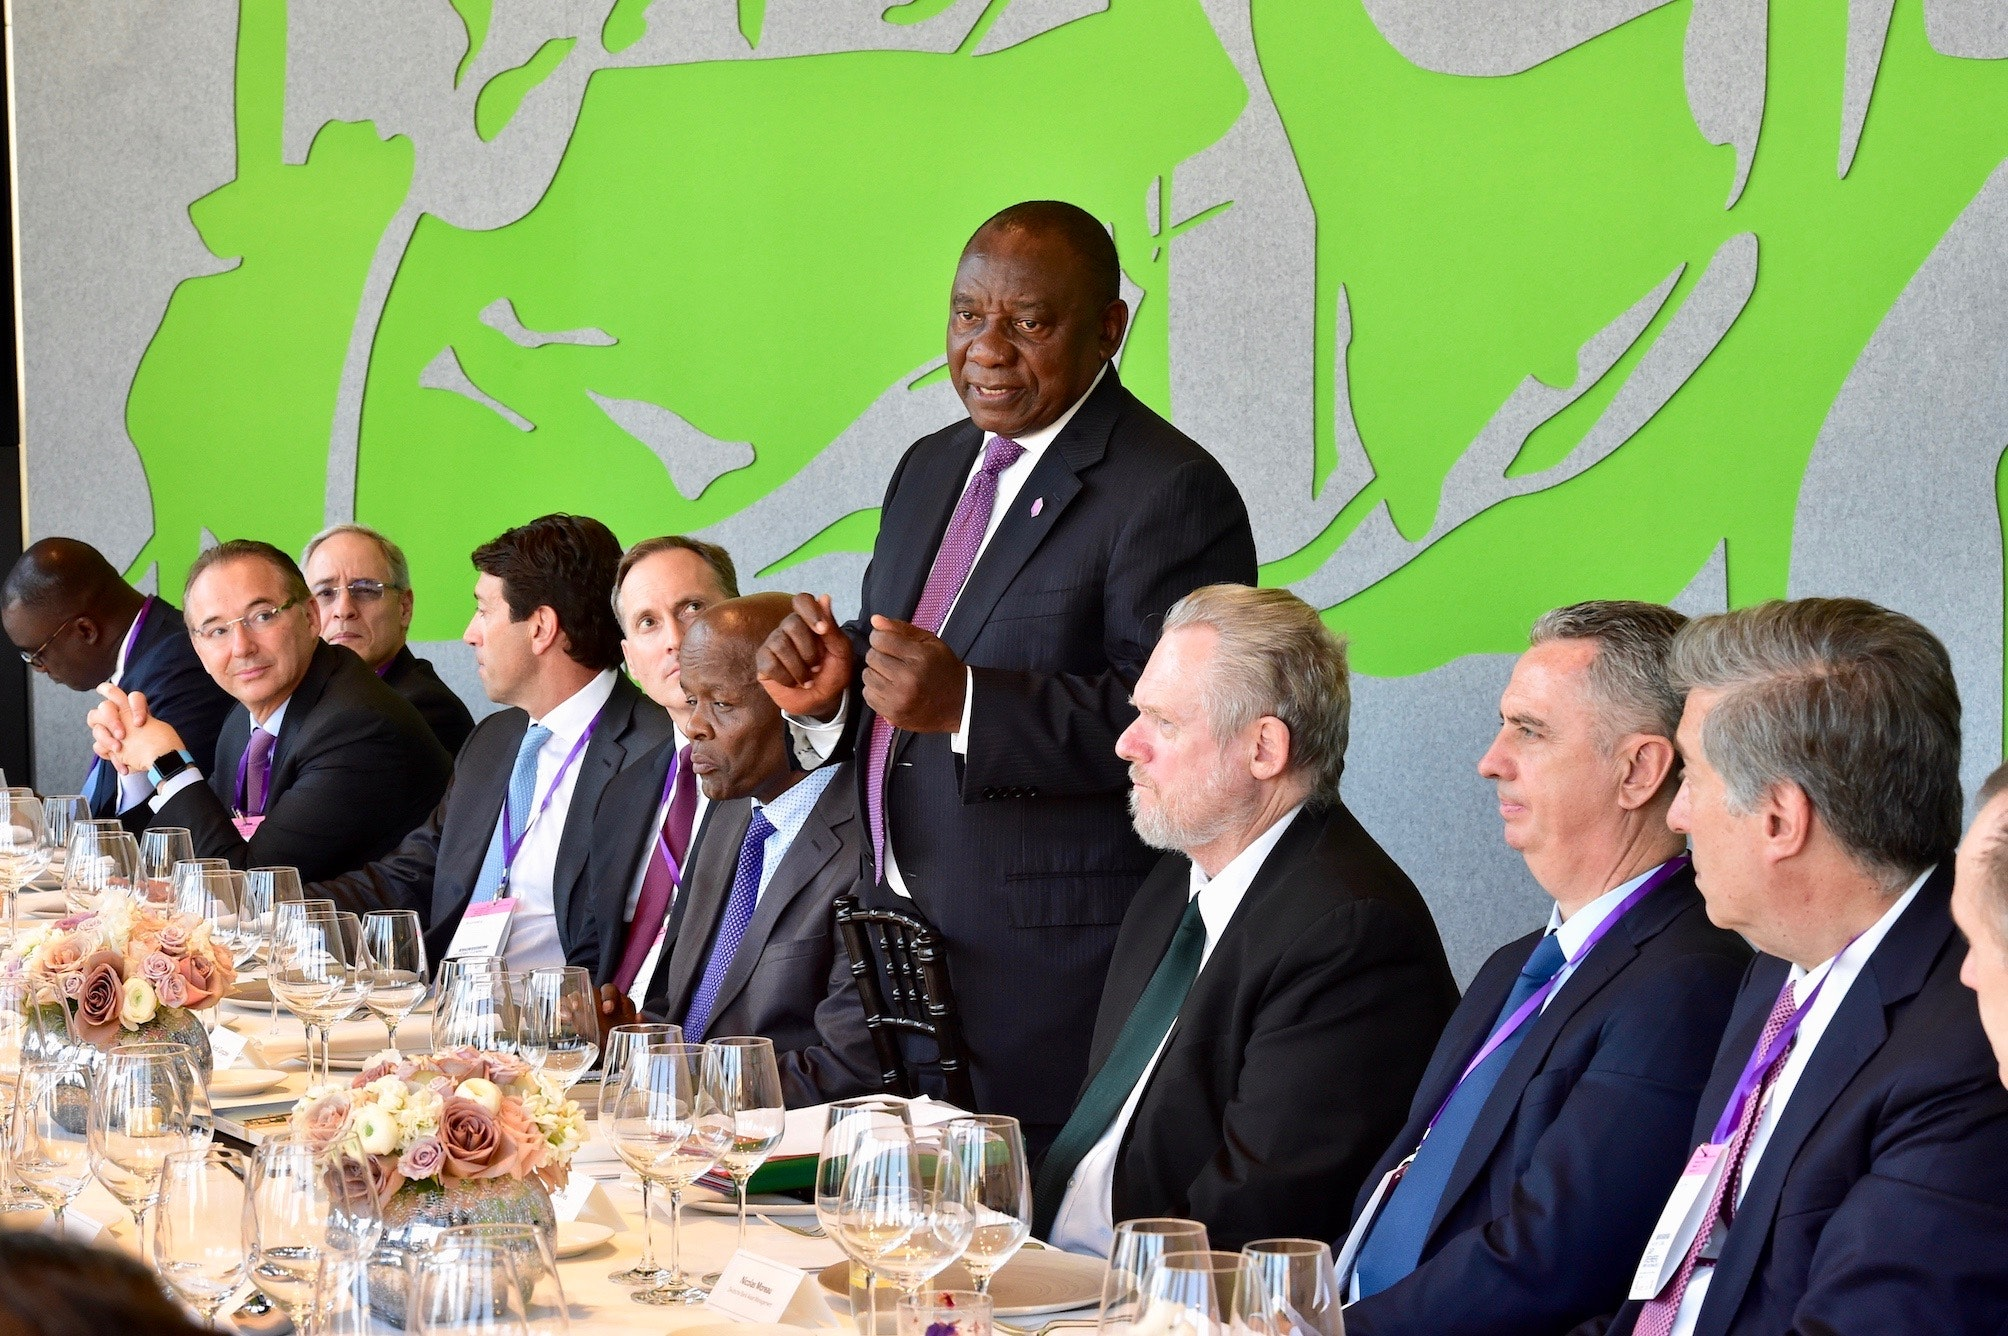 President Zuma set to campaign for SA to stay on UN Security Council